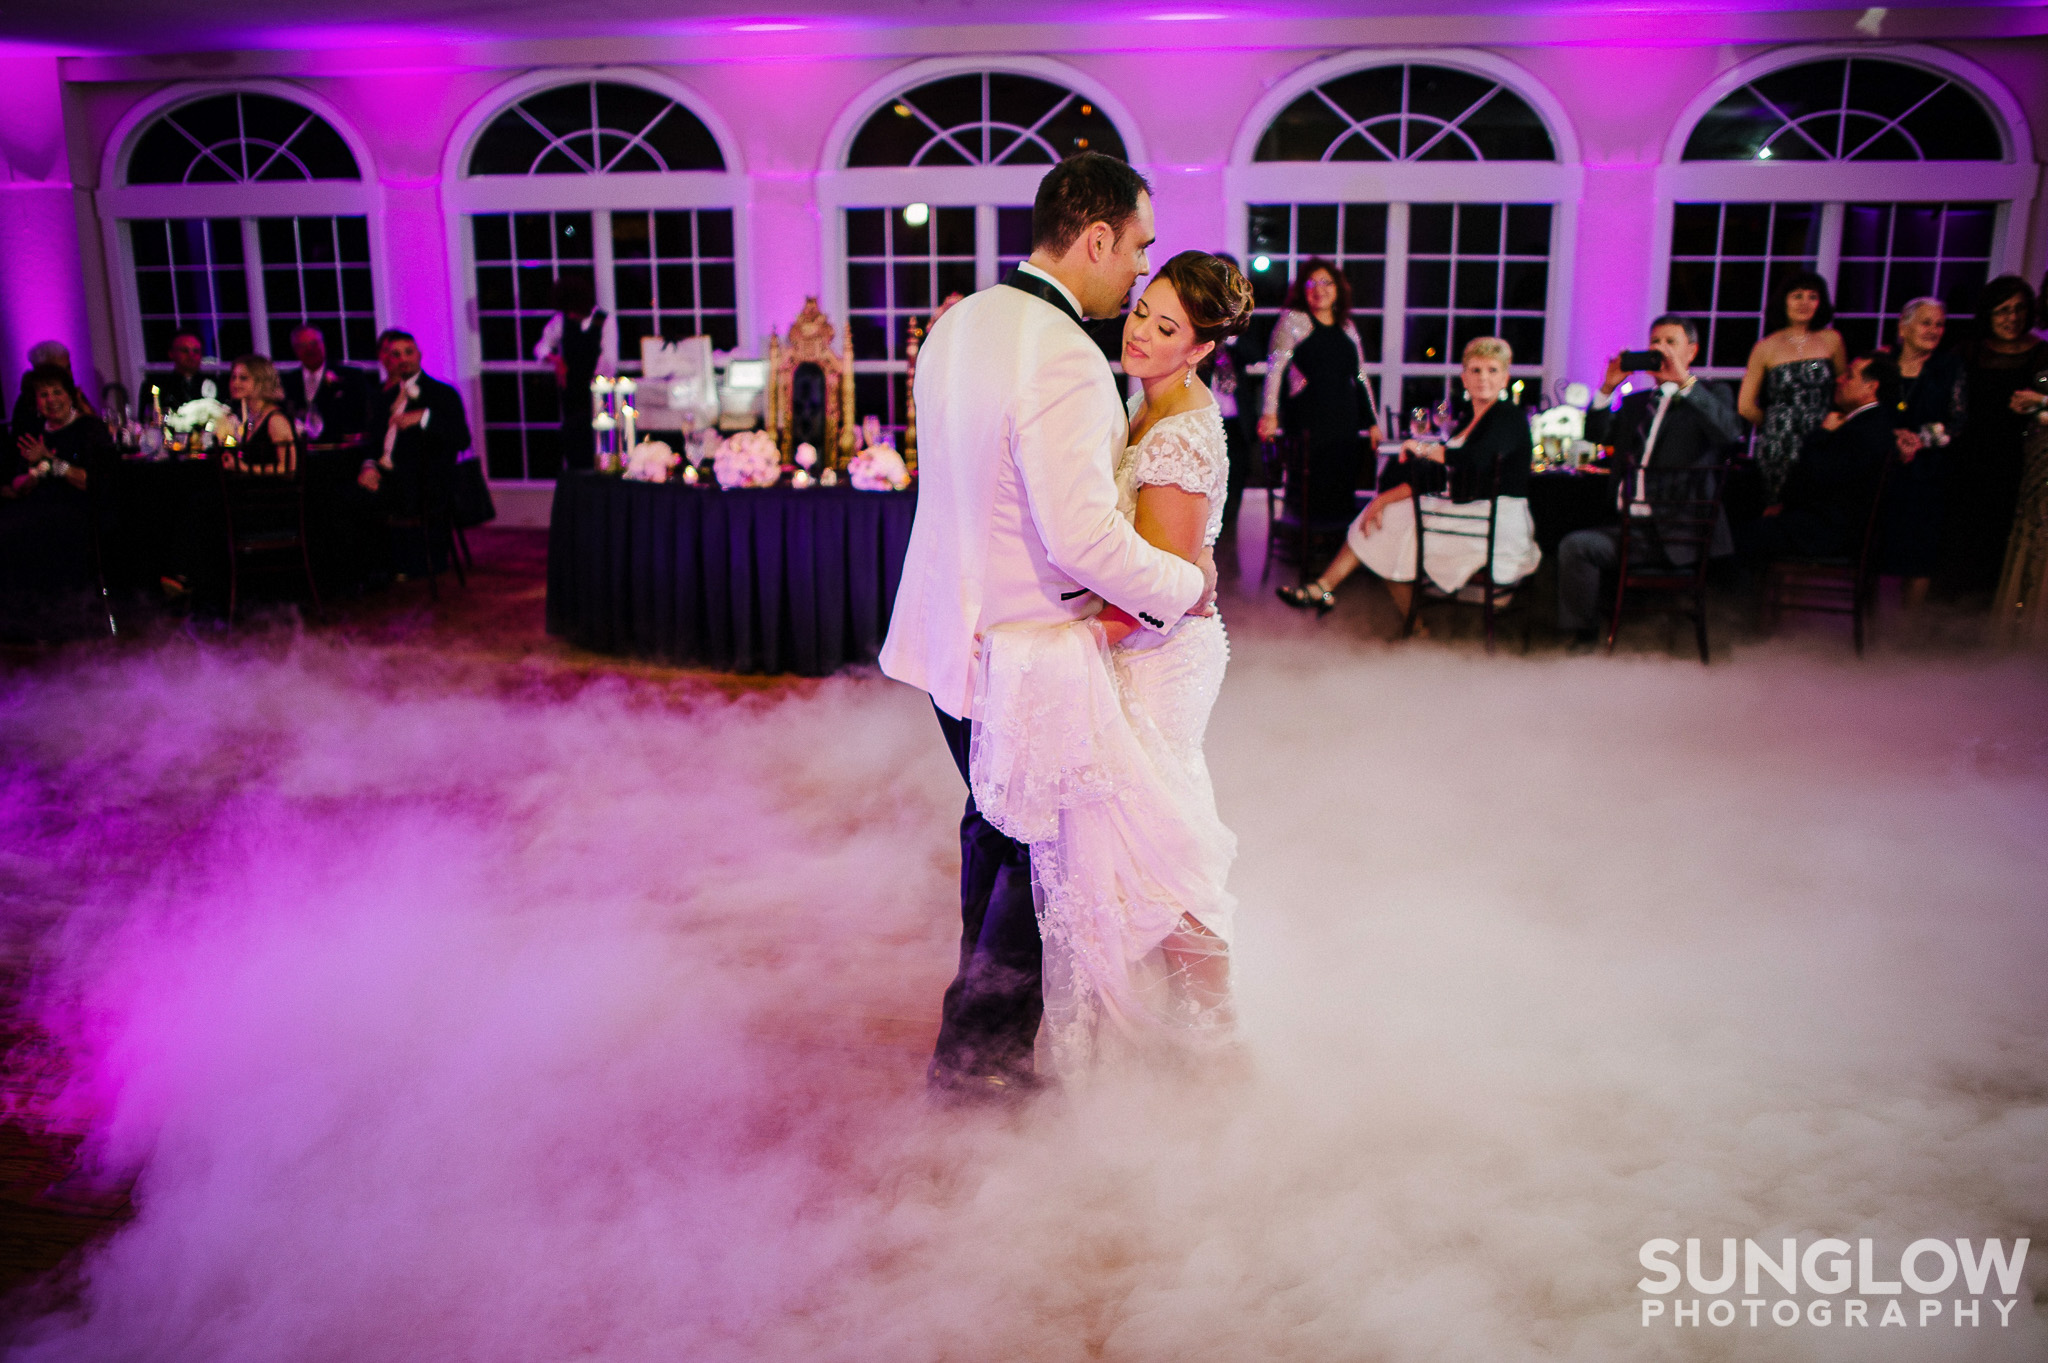 Michael Anthony Productions – DJ Services and Uplighting » Why Book ...